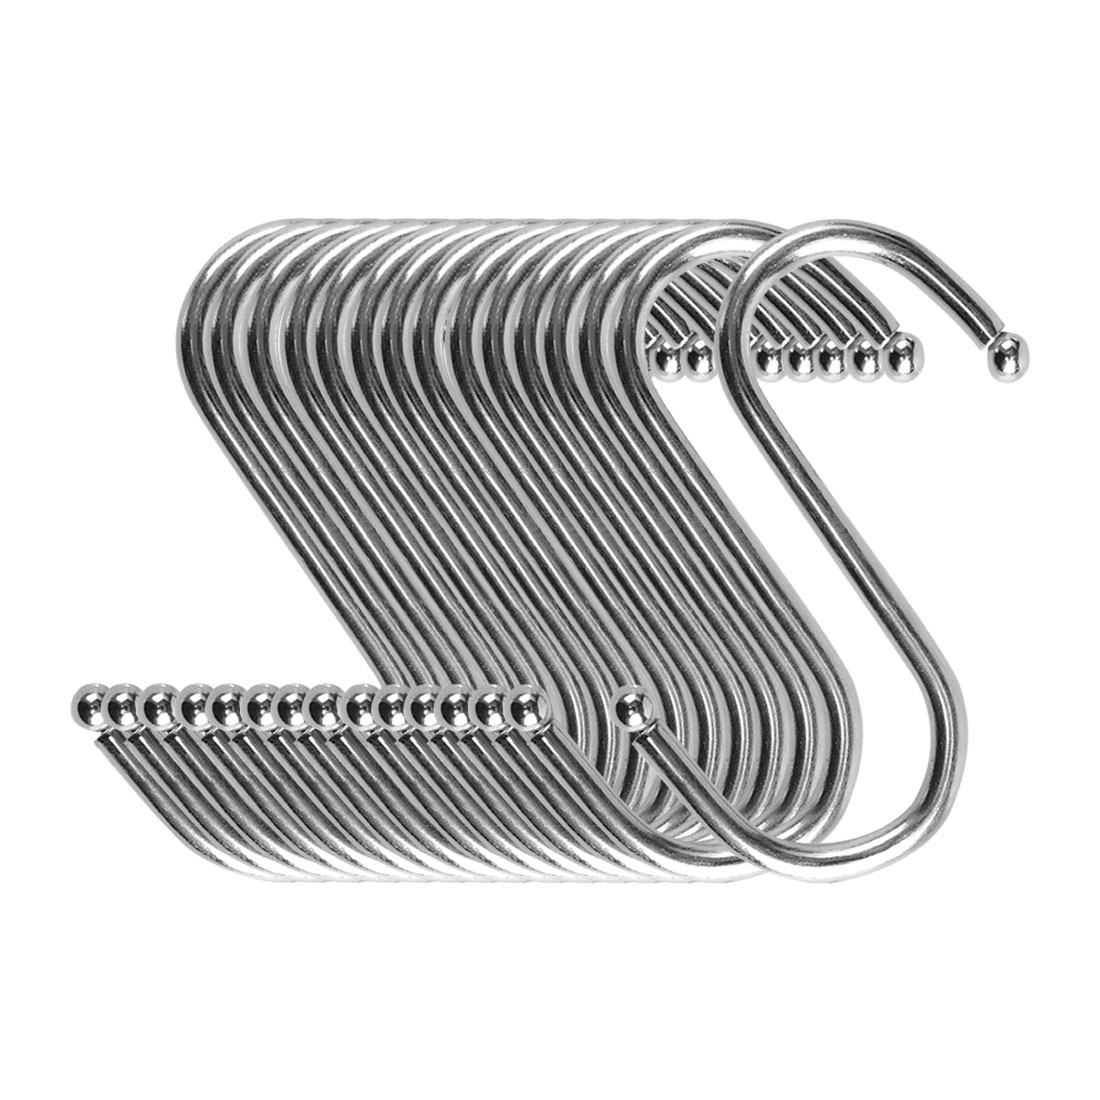 S Shape Hook Rack Stainless Steel for Kitchenware Clothes Towels Holder 15 Pack